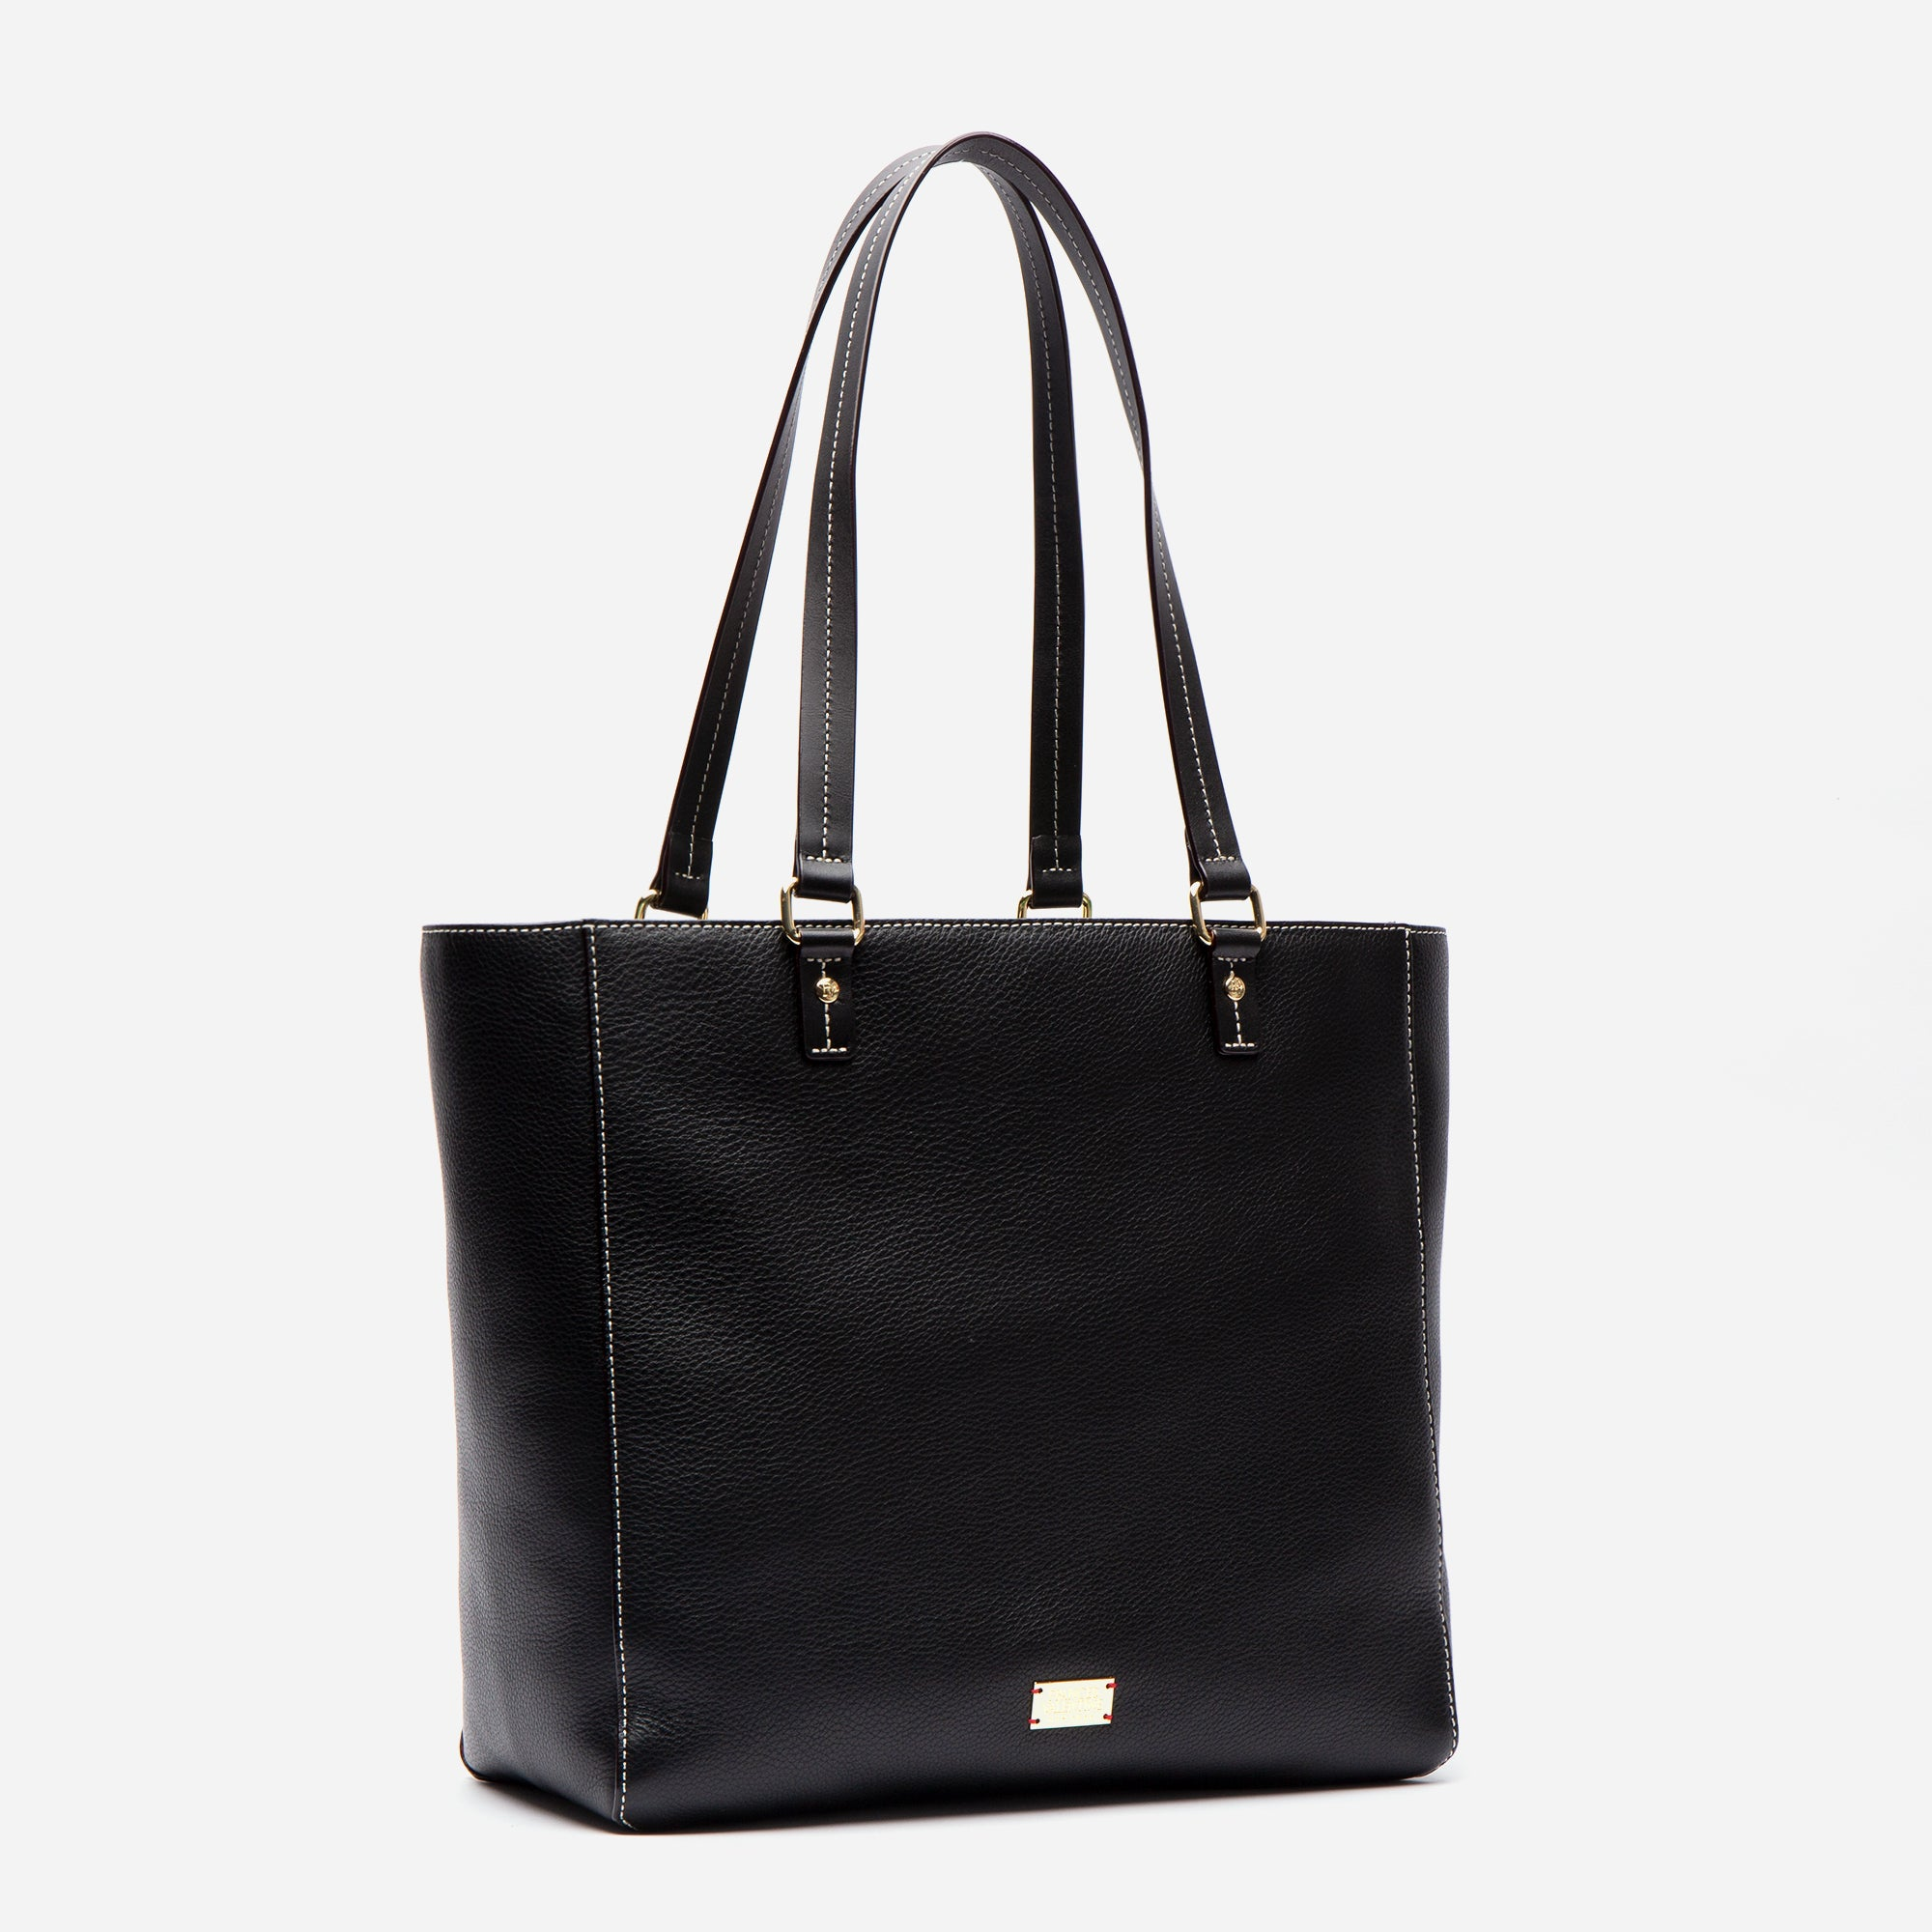 Margie Tote Tumbled Leather Black